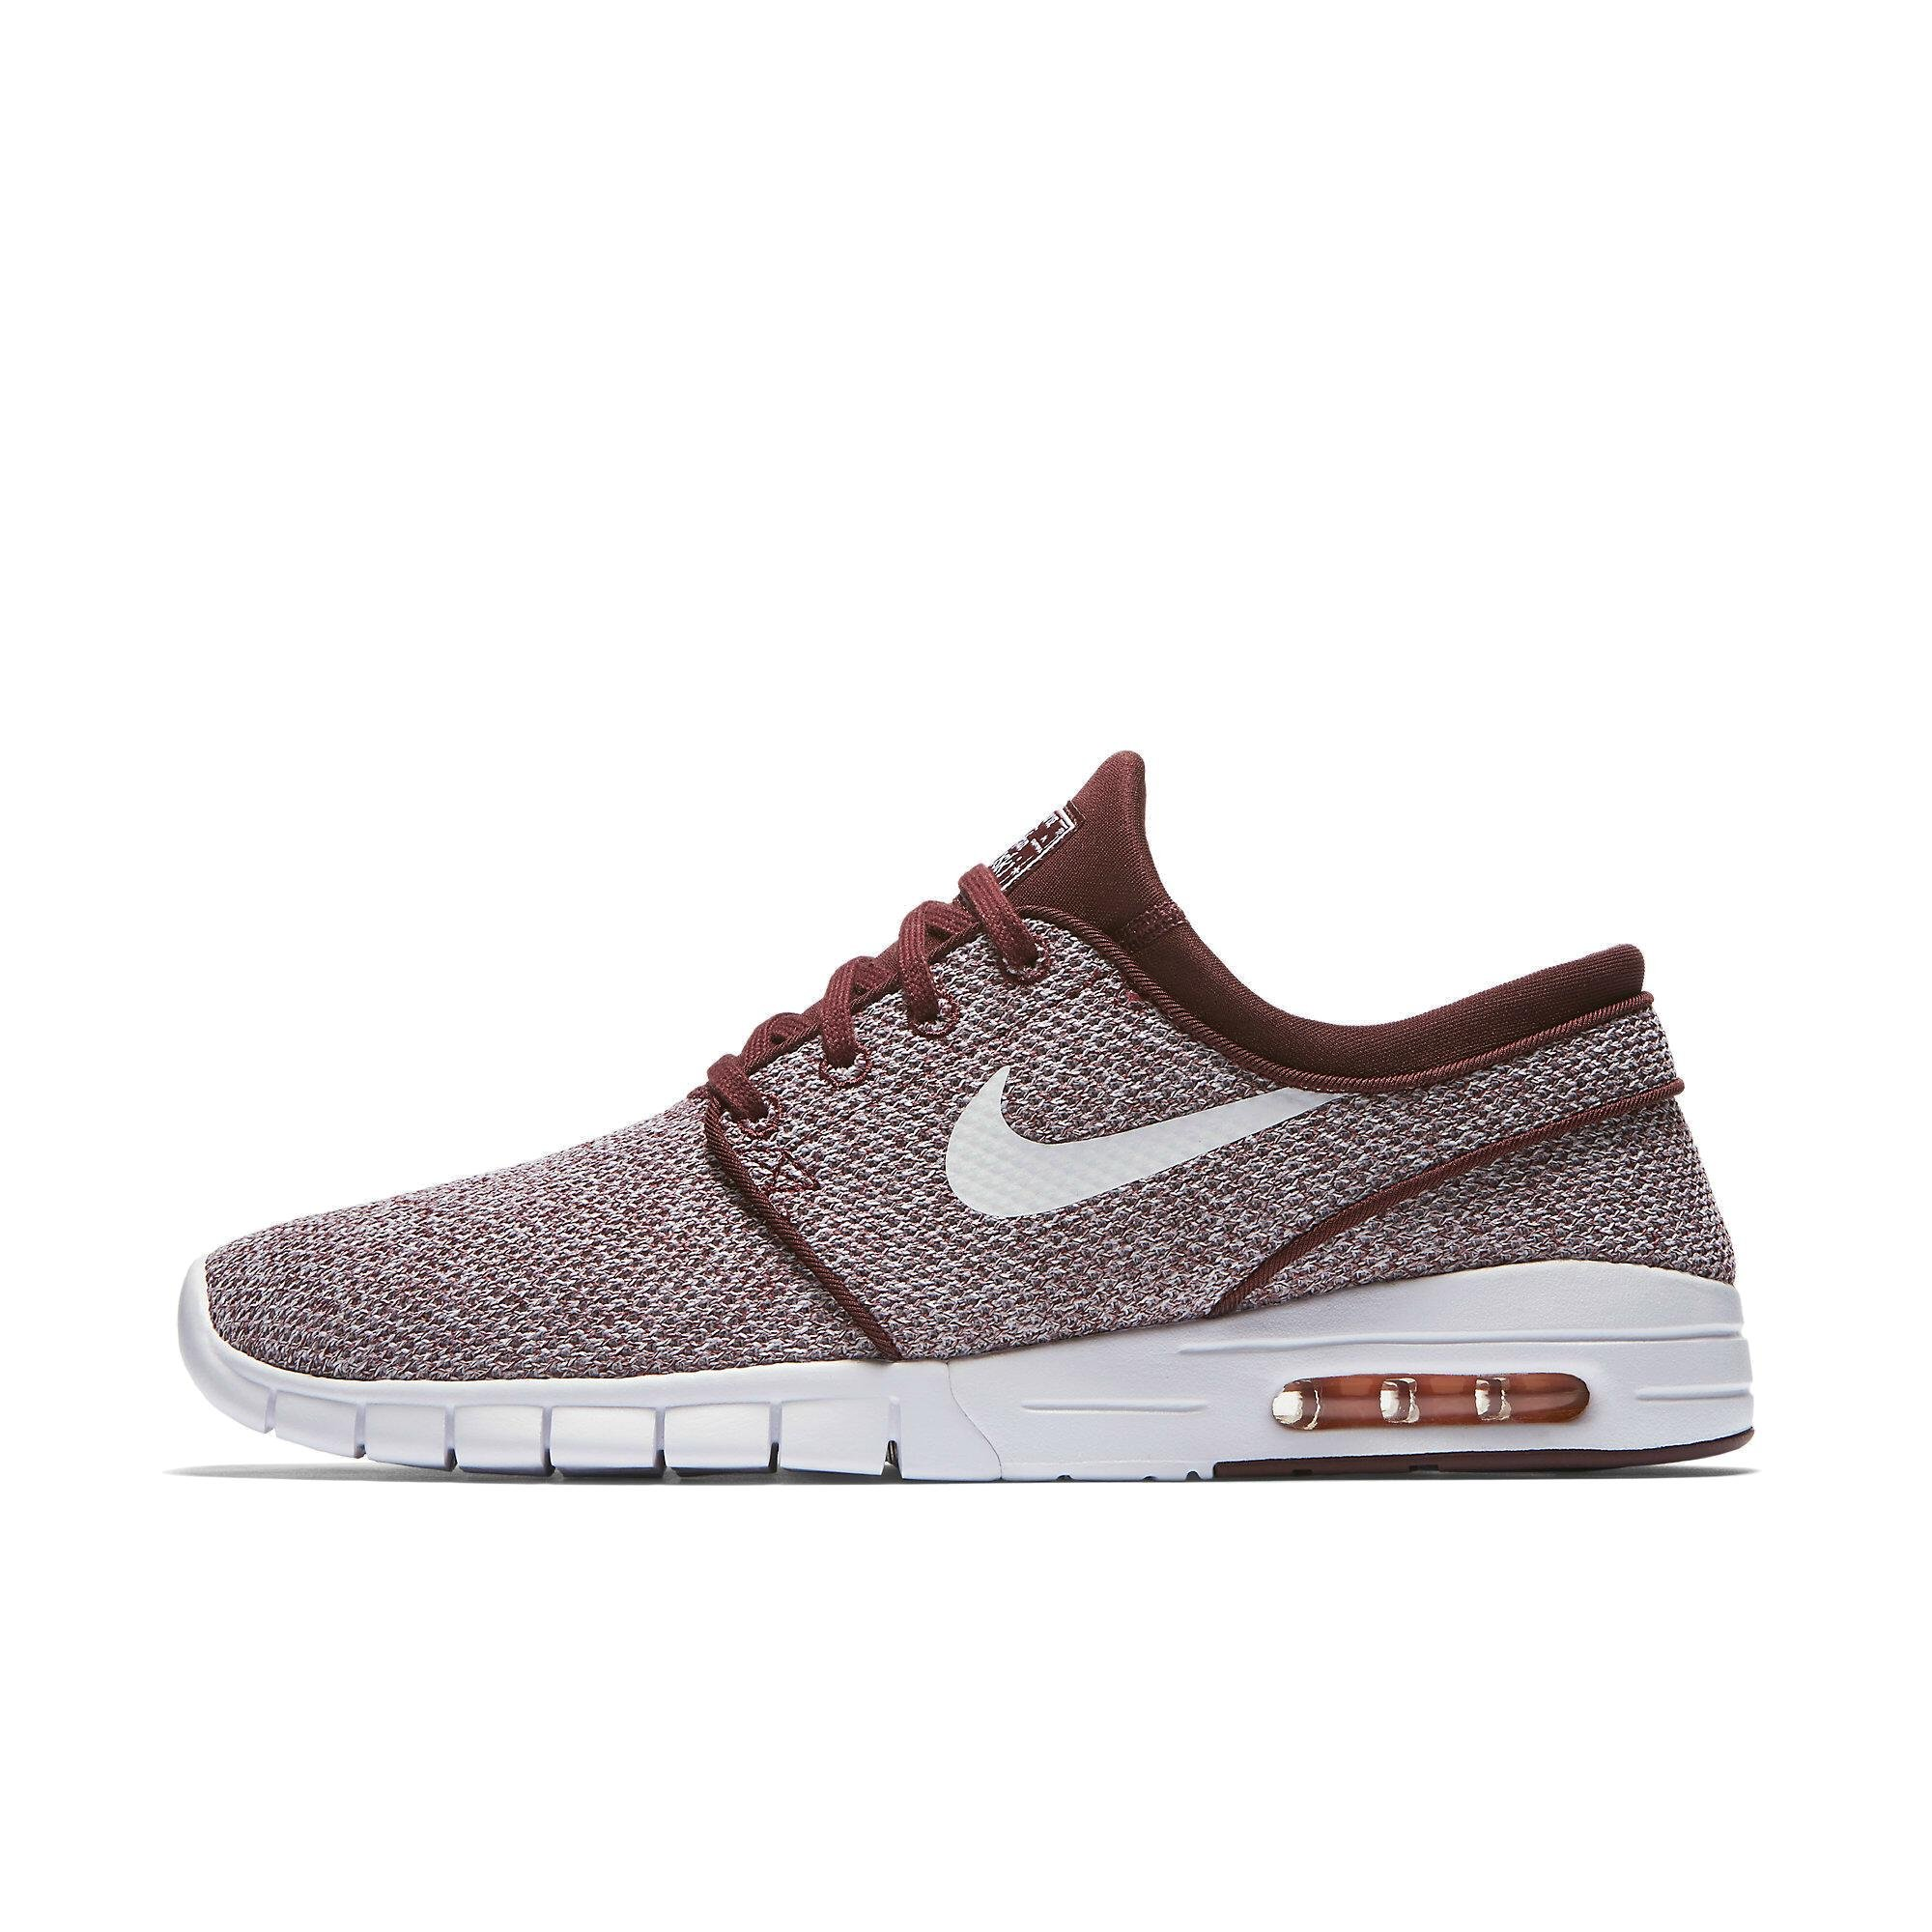 half off ff00f 4accd Galleon - Nike Men s Stefan Janoski Max Dark Team Red White Sneakers - 13  D(M) US